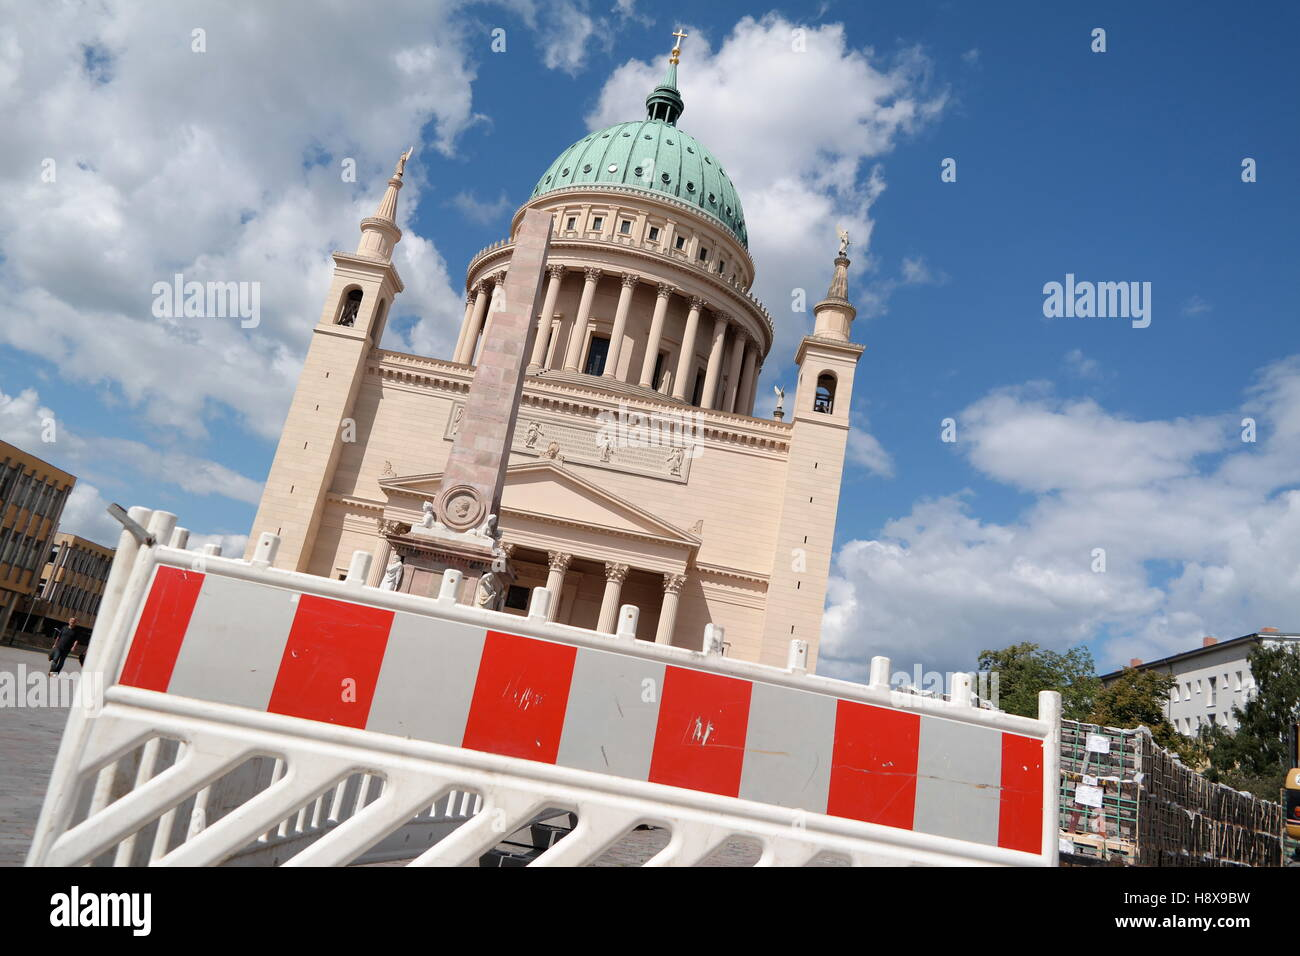 Nikolaikirche in Potsdam, Germany Stock Photo